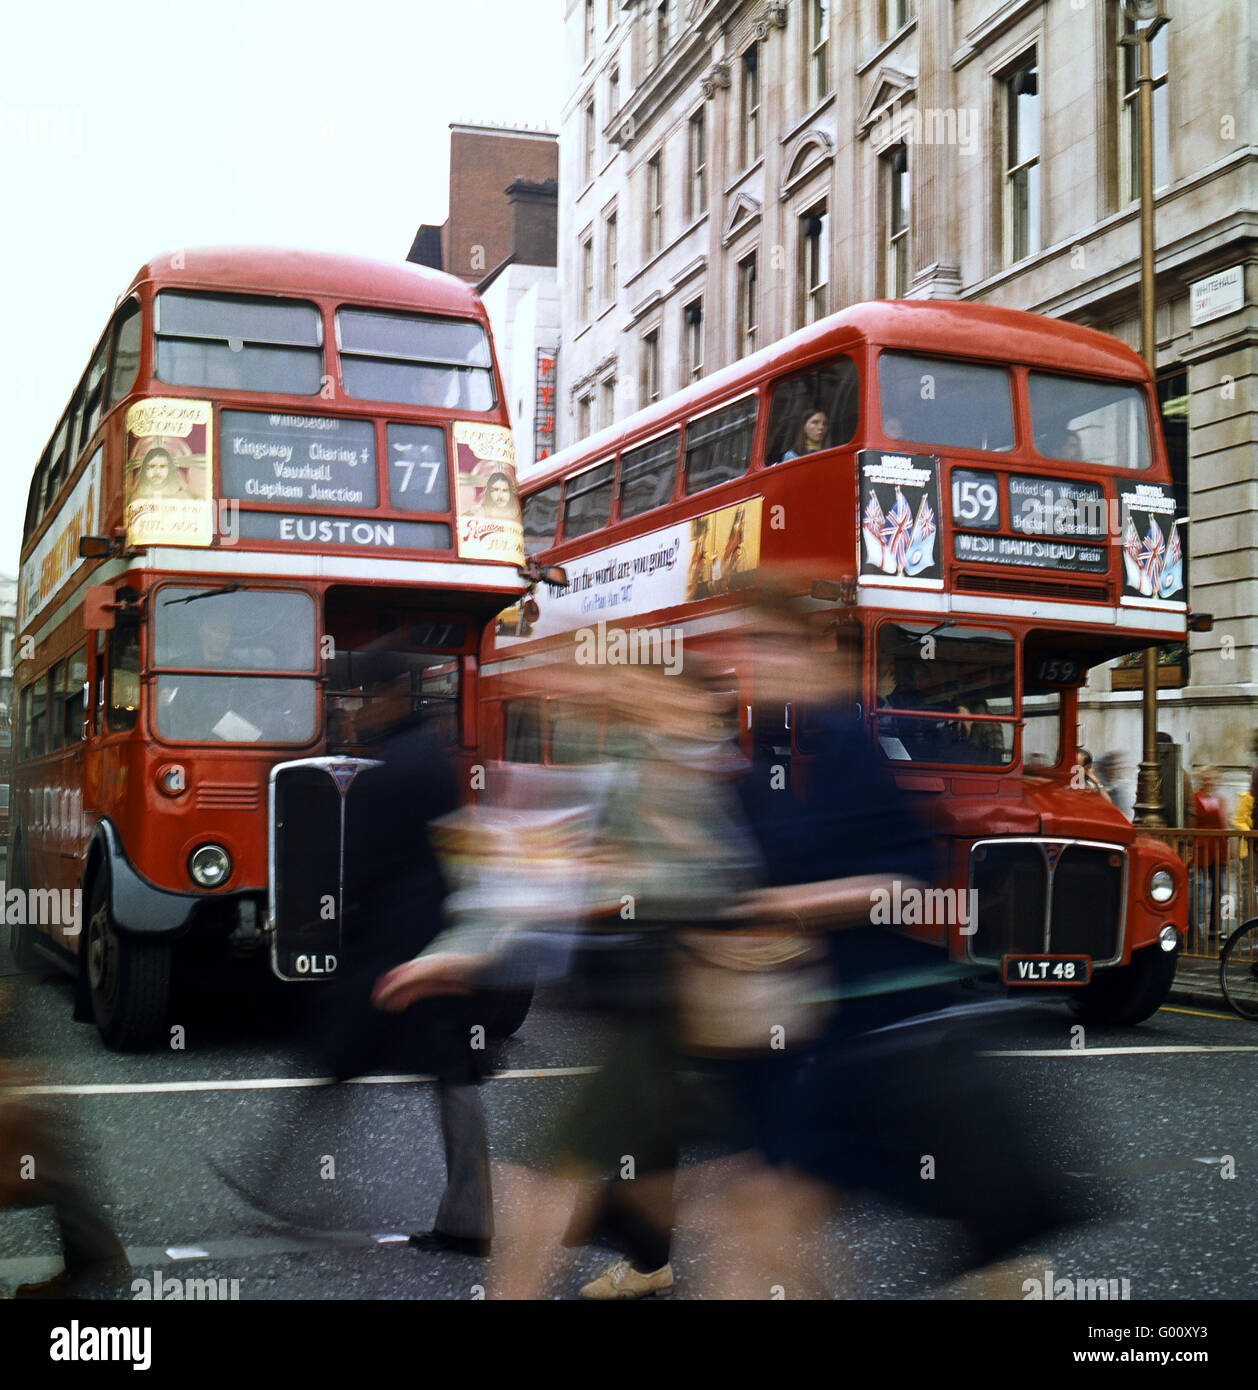 buses in London - Stock Image